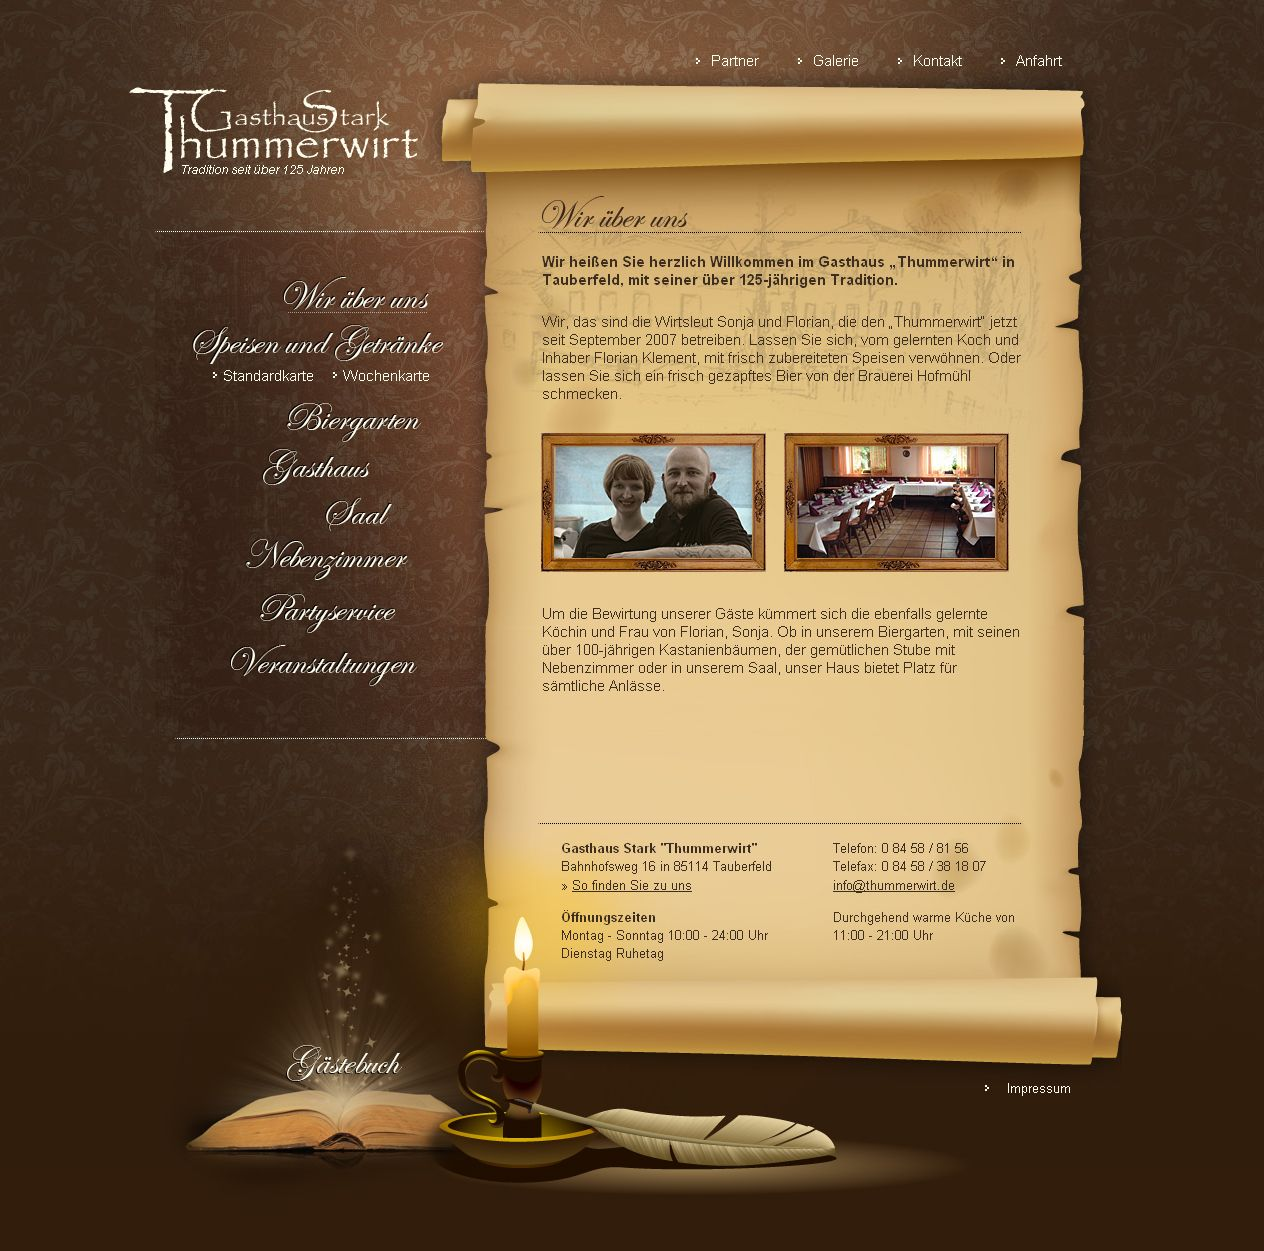 Publican Webdesign By Medienvirus Deviantart Com Repin If You Like